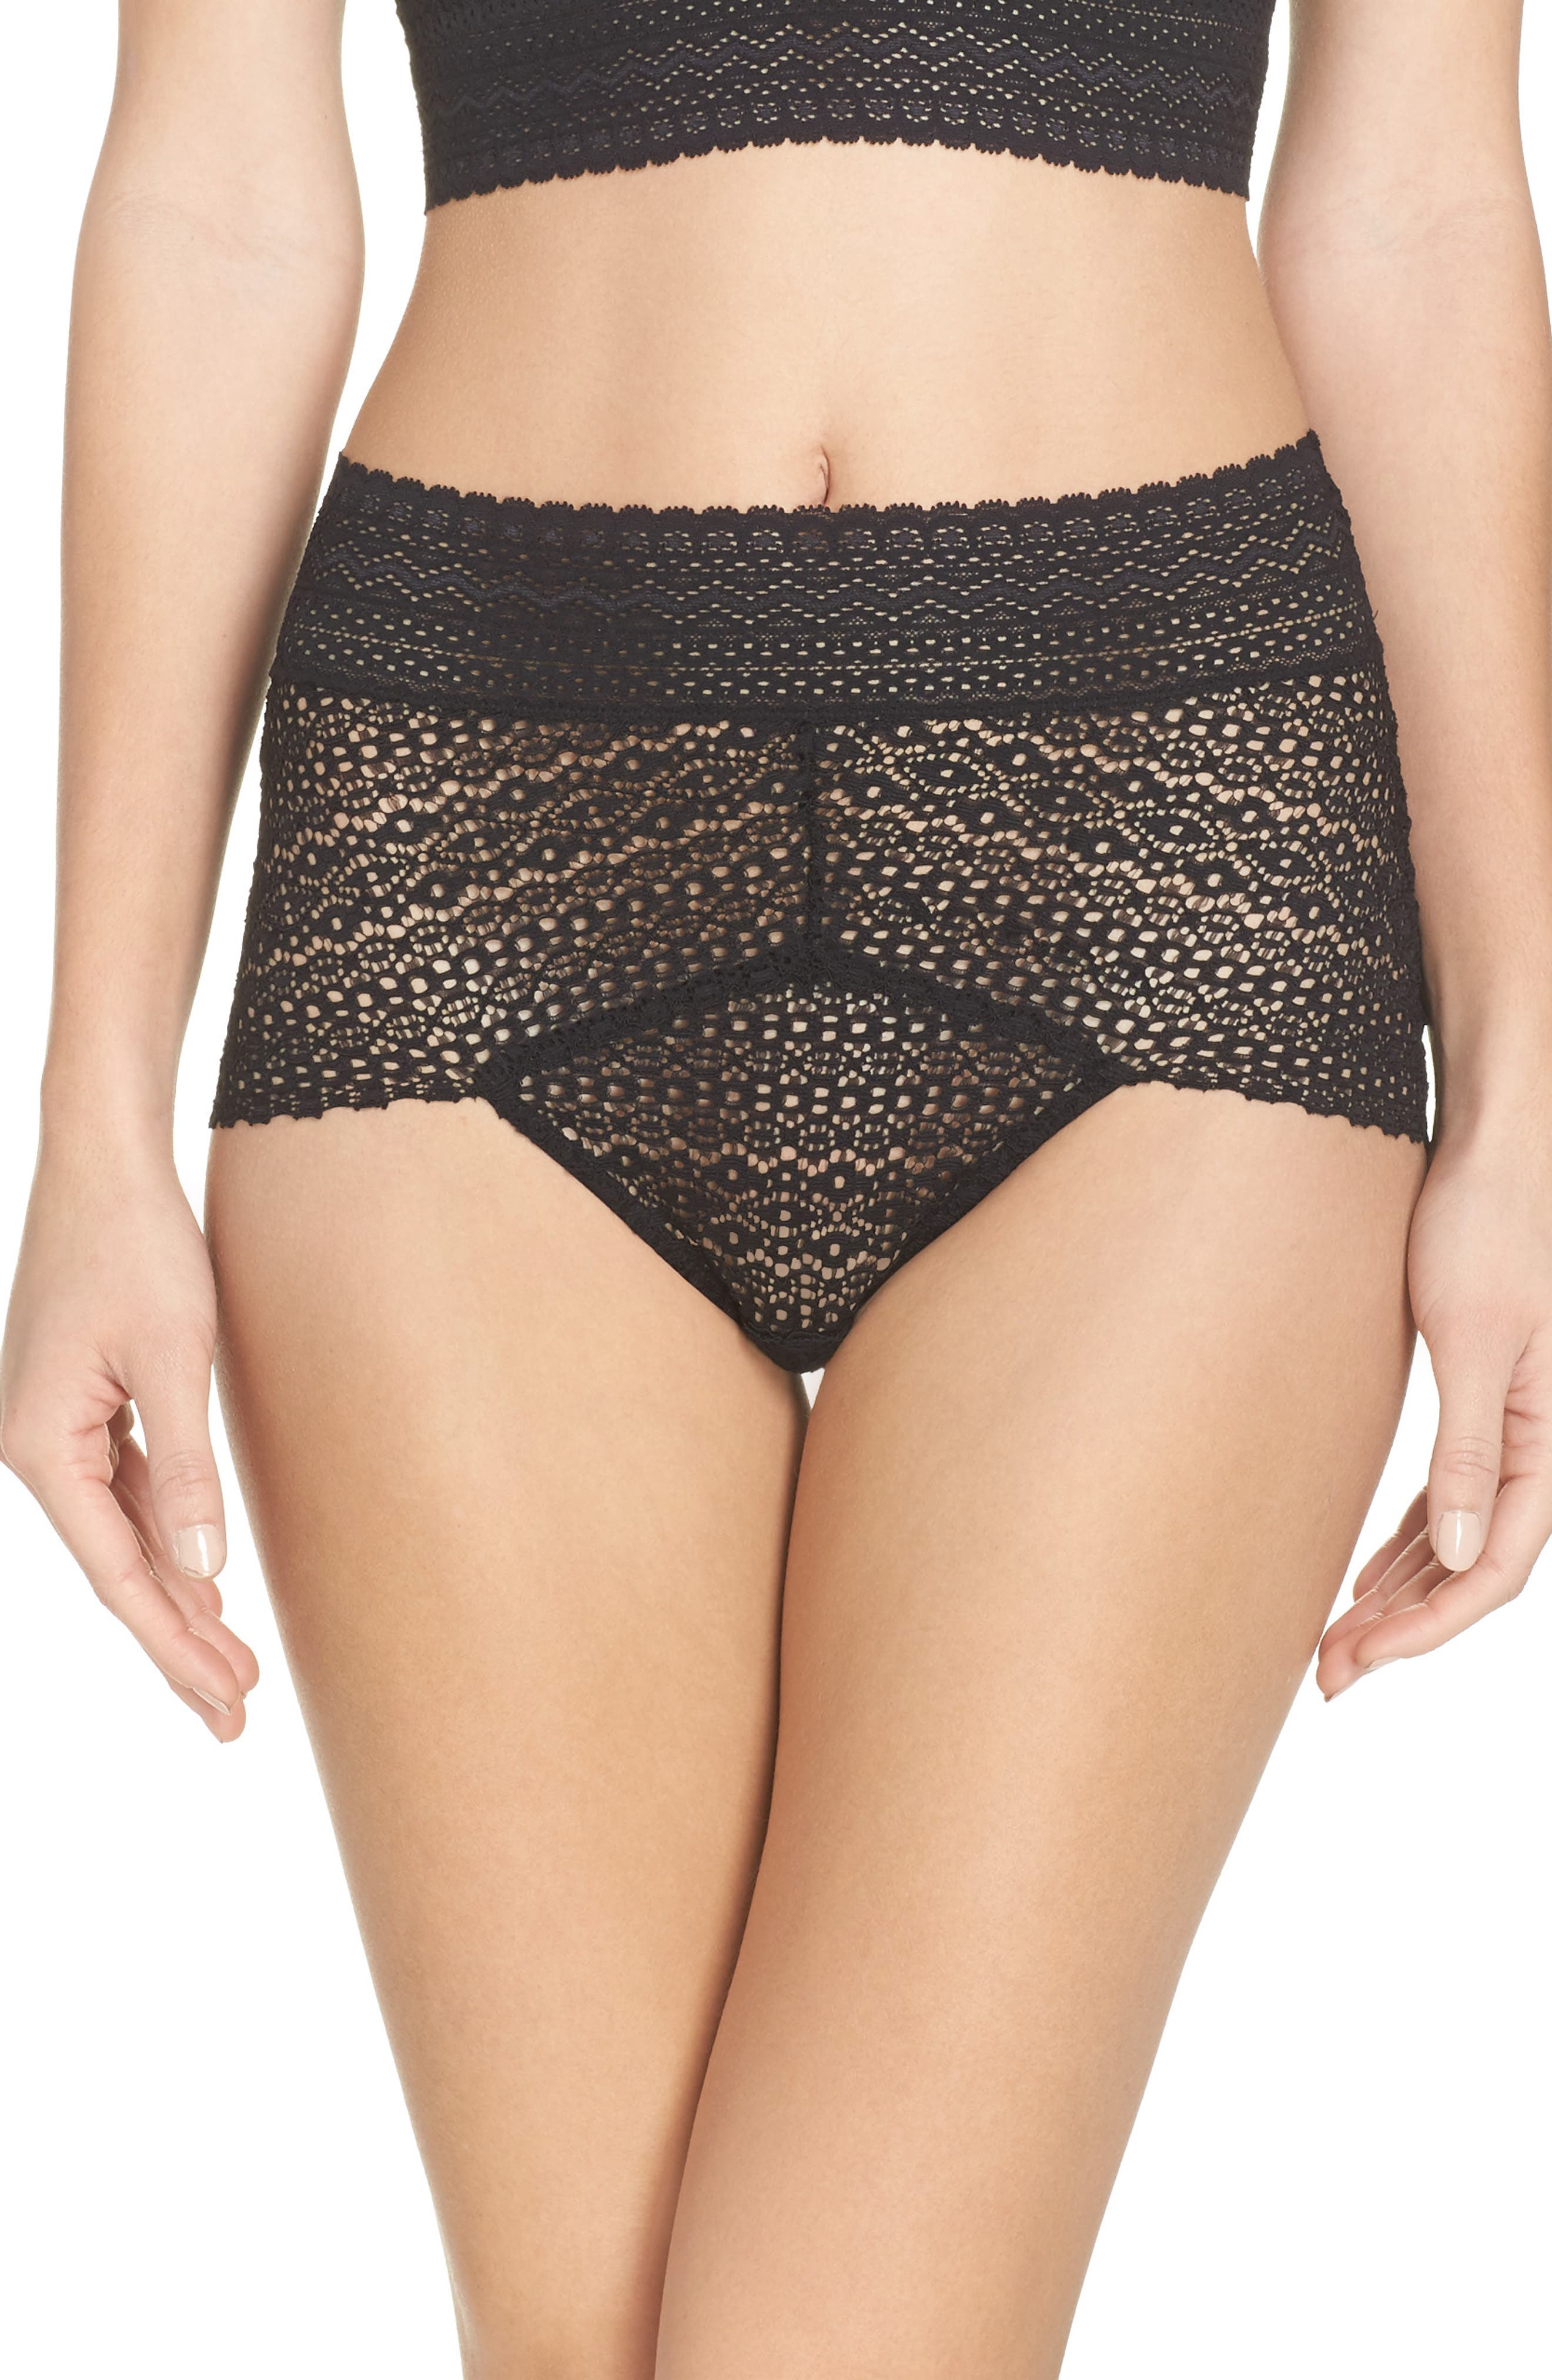 Rumi High Waist Briefs,                         Main,                         color, 001